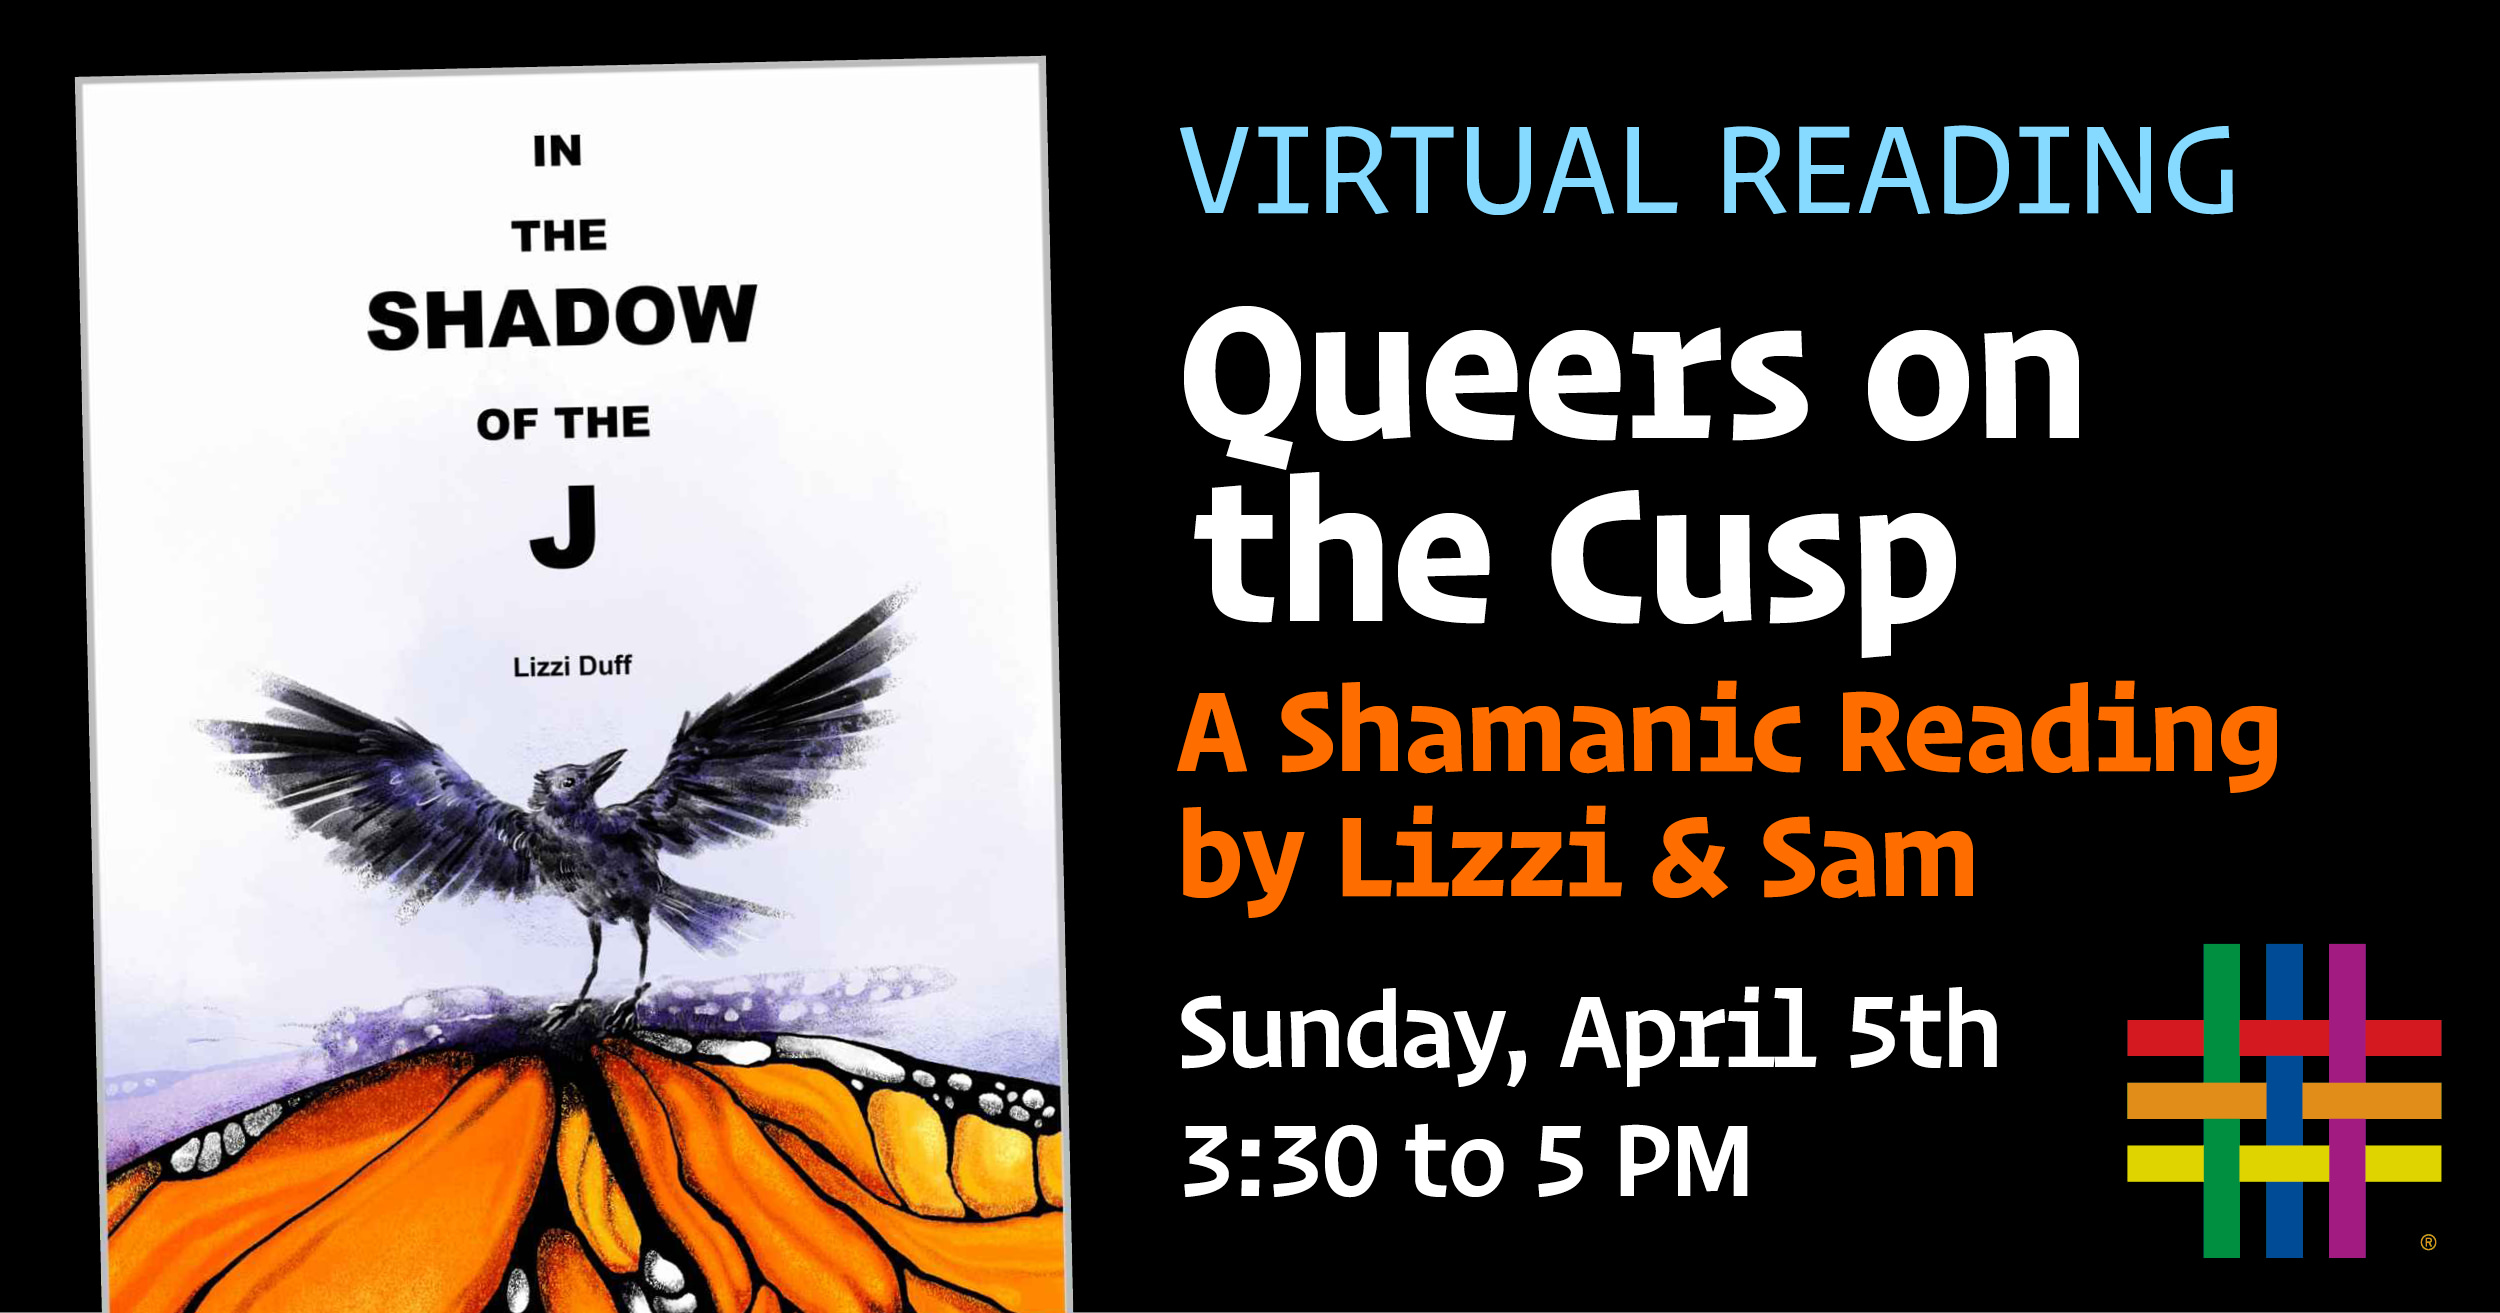 QUEERS ON THE CUSP | A SHAMANIC READING BY LIZZI & SAM at Brooklyn Community Pride Center